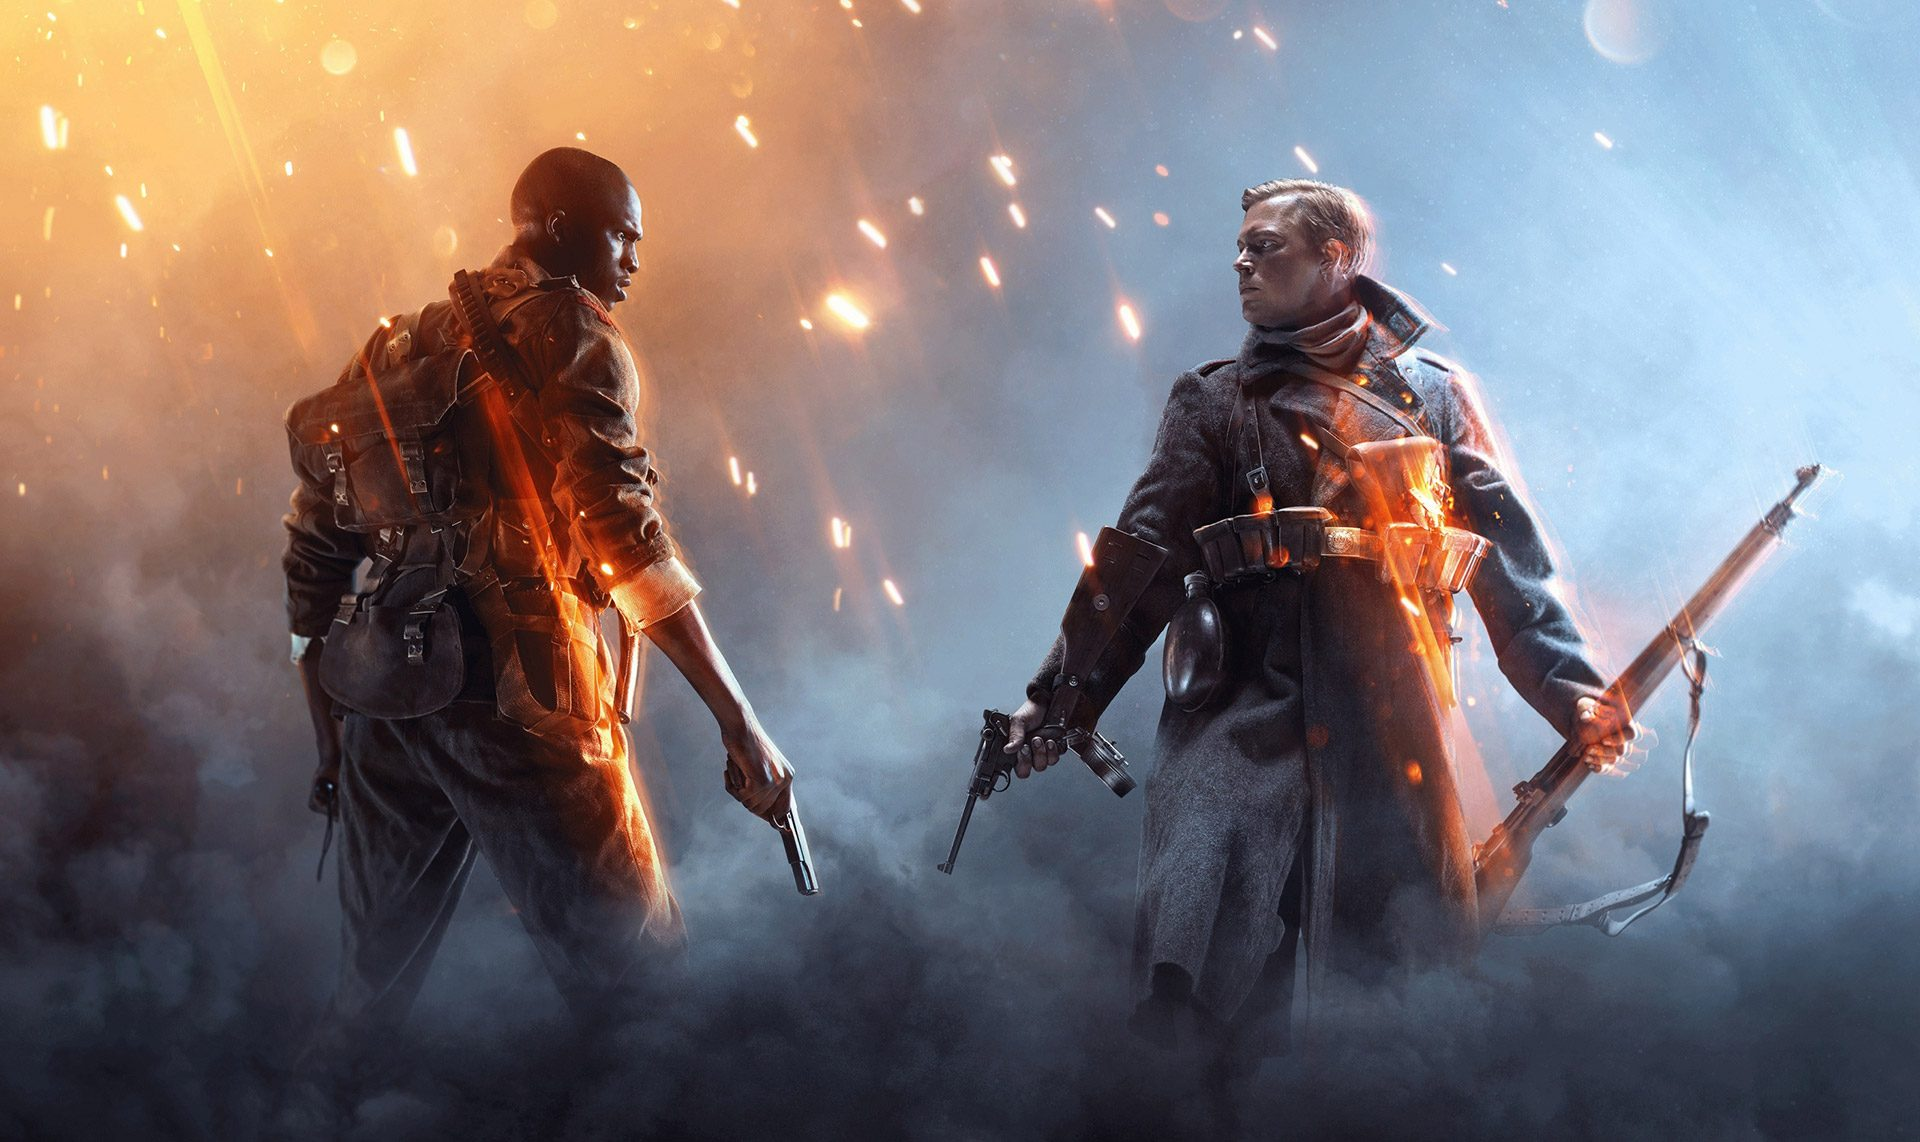 Play Battlefield 5 free for 10 hours if you message the EA support team